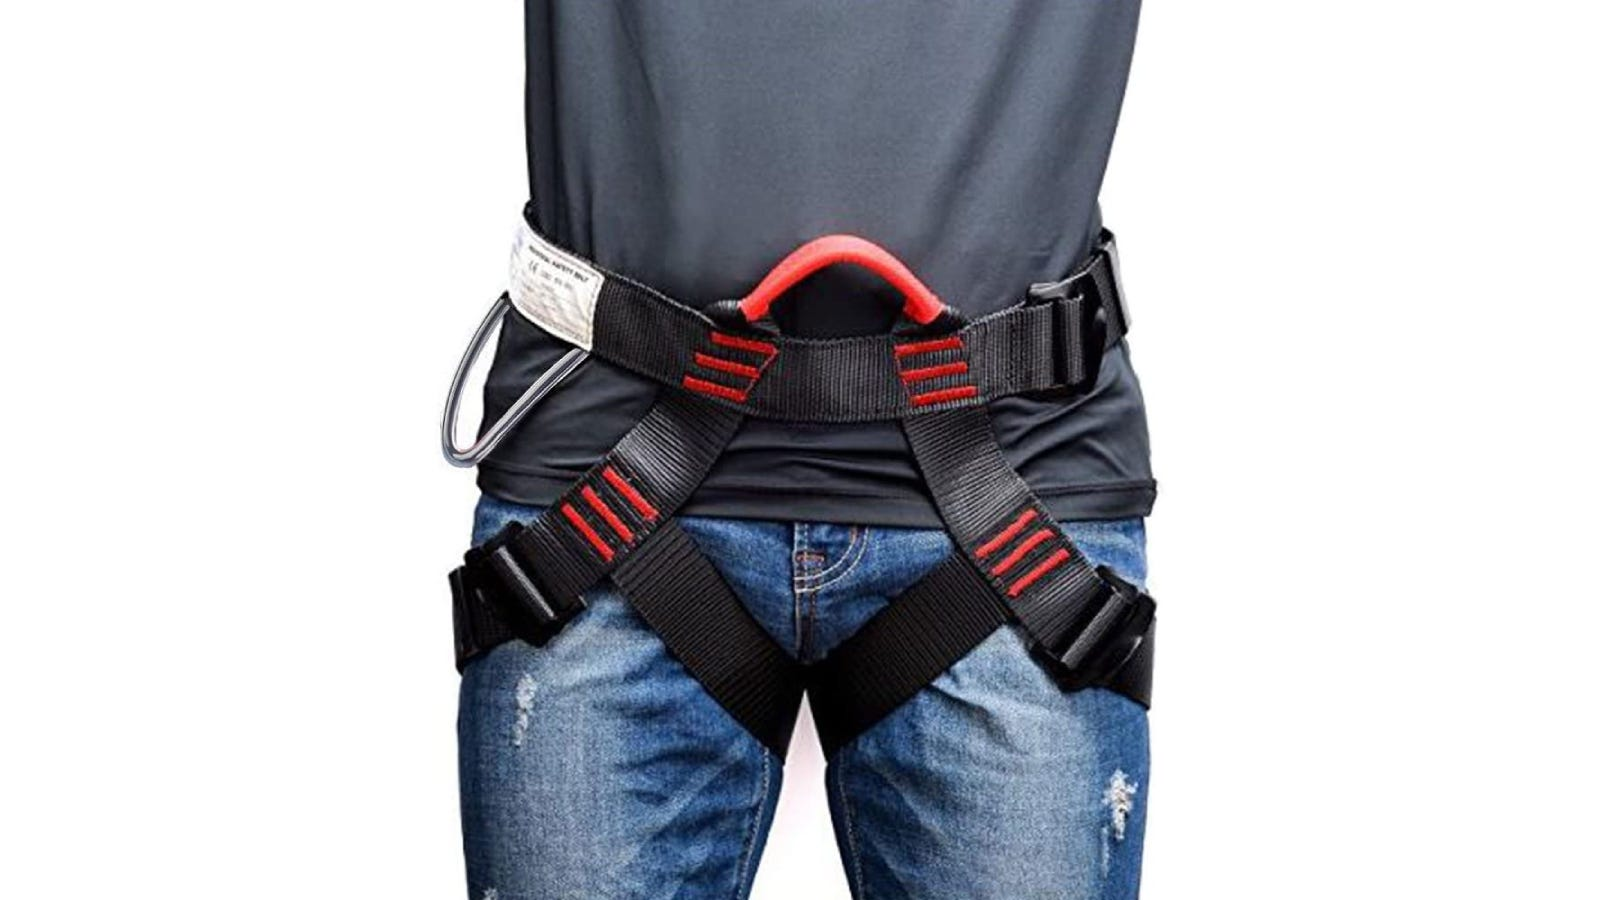 A man wearing a black and red safety harness.